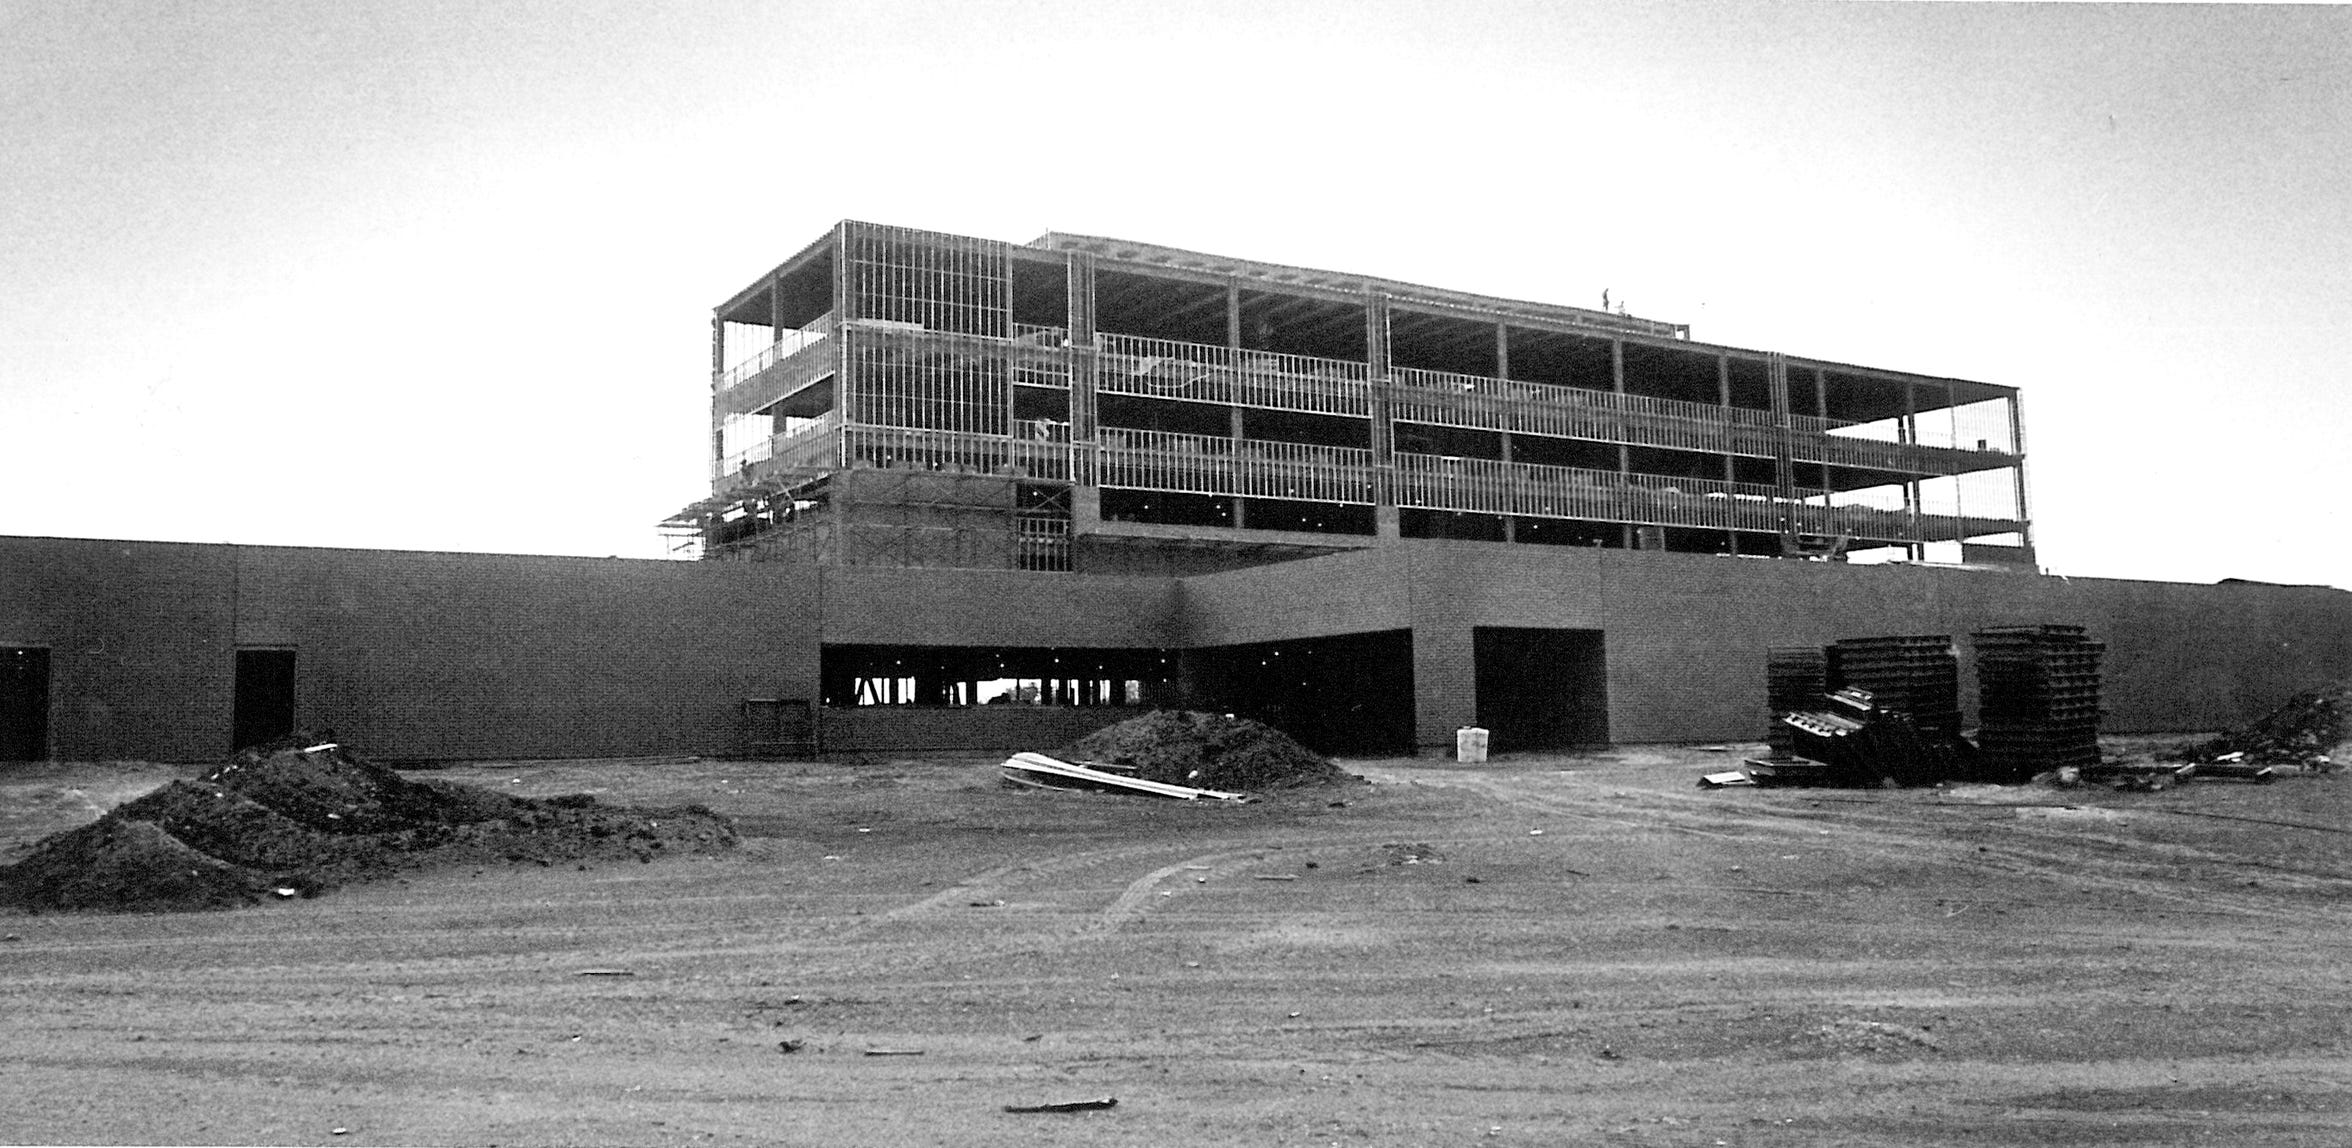 Humana Hospital at Antilley Road and U.S. Highway 83/84 under construction in October 1983. The facility was the precursor to Abilene Regional Medical Center.